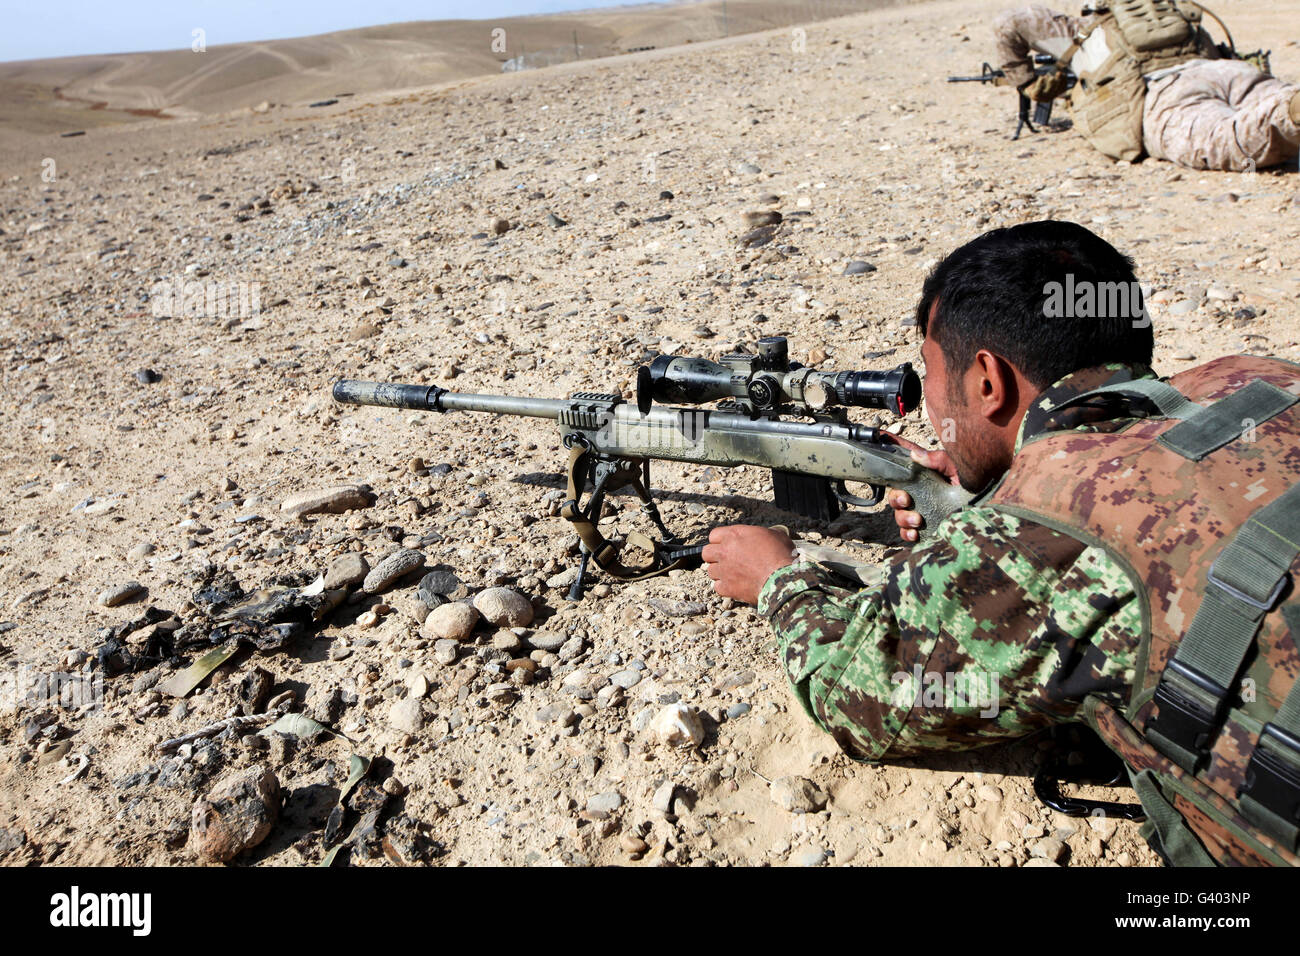 An Afghan National Army soldier fires an M40A5 rifle. - Stock Image